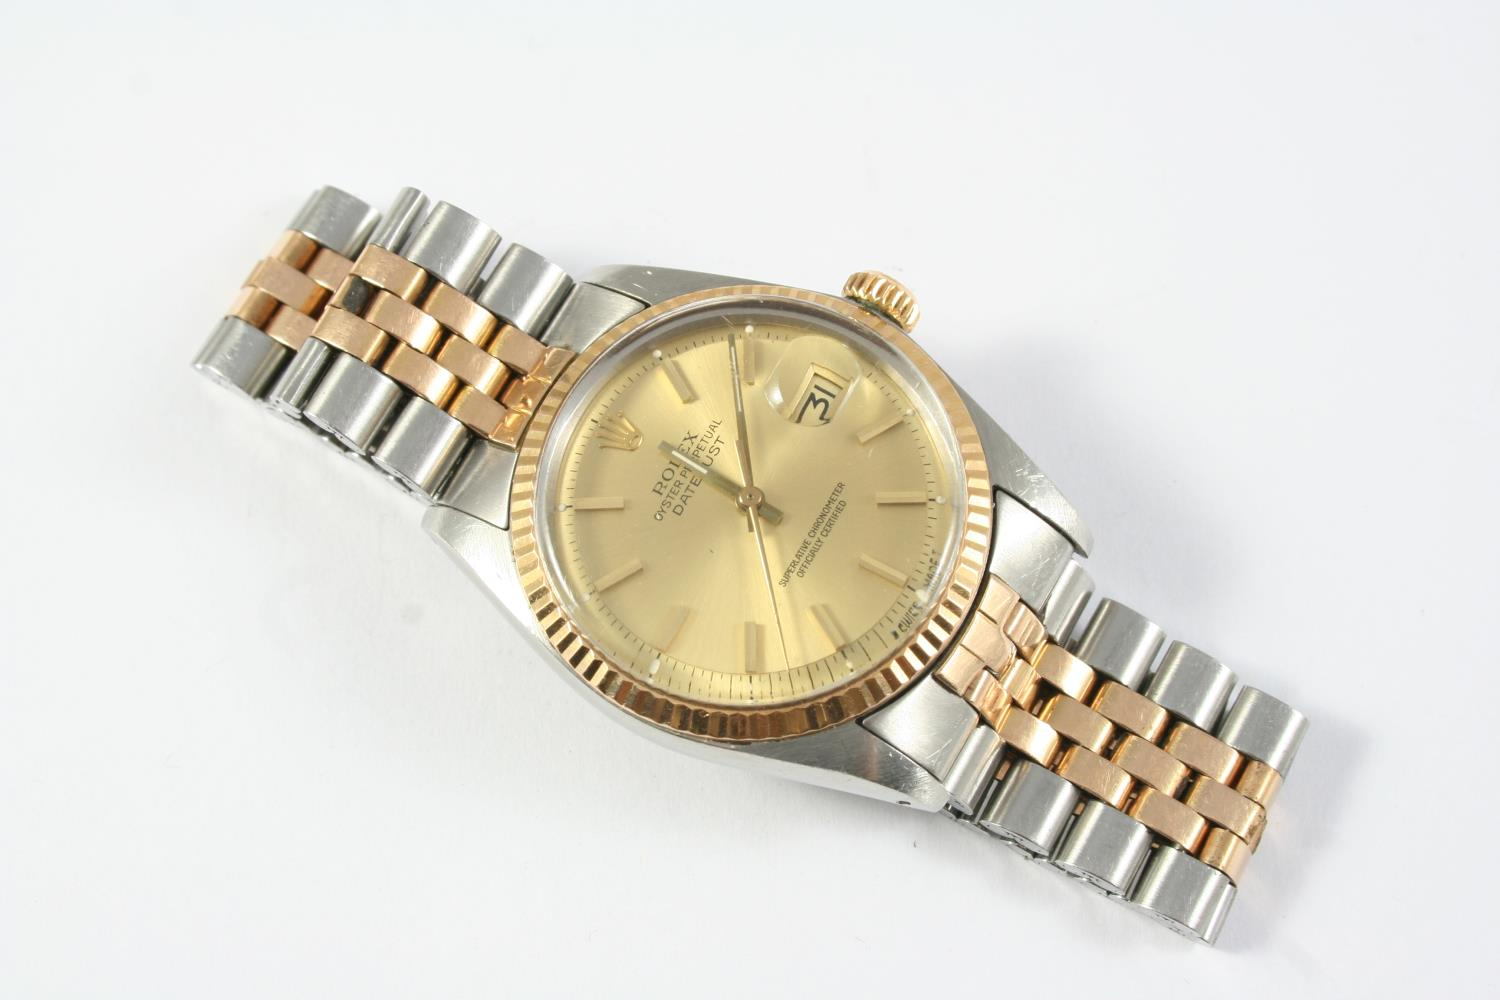 A GENTLEMAN'S STAINLESS STEEL AND GOLD OYSTER PERPETUAL DATEJUST WRISTWATCH BY ROLEX the signed